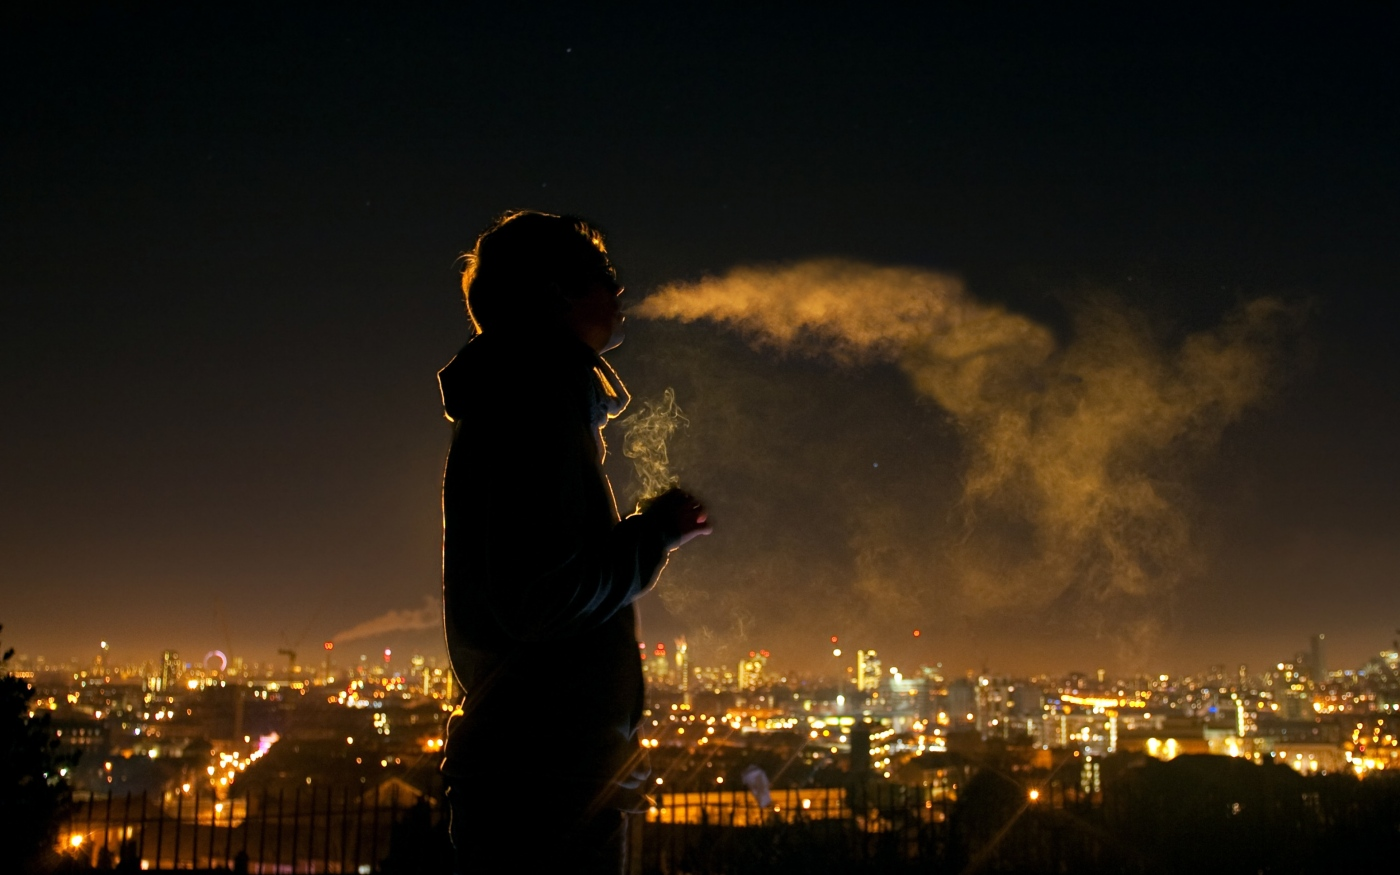 city_smoke_night_silhouette_31457_3840x2400